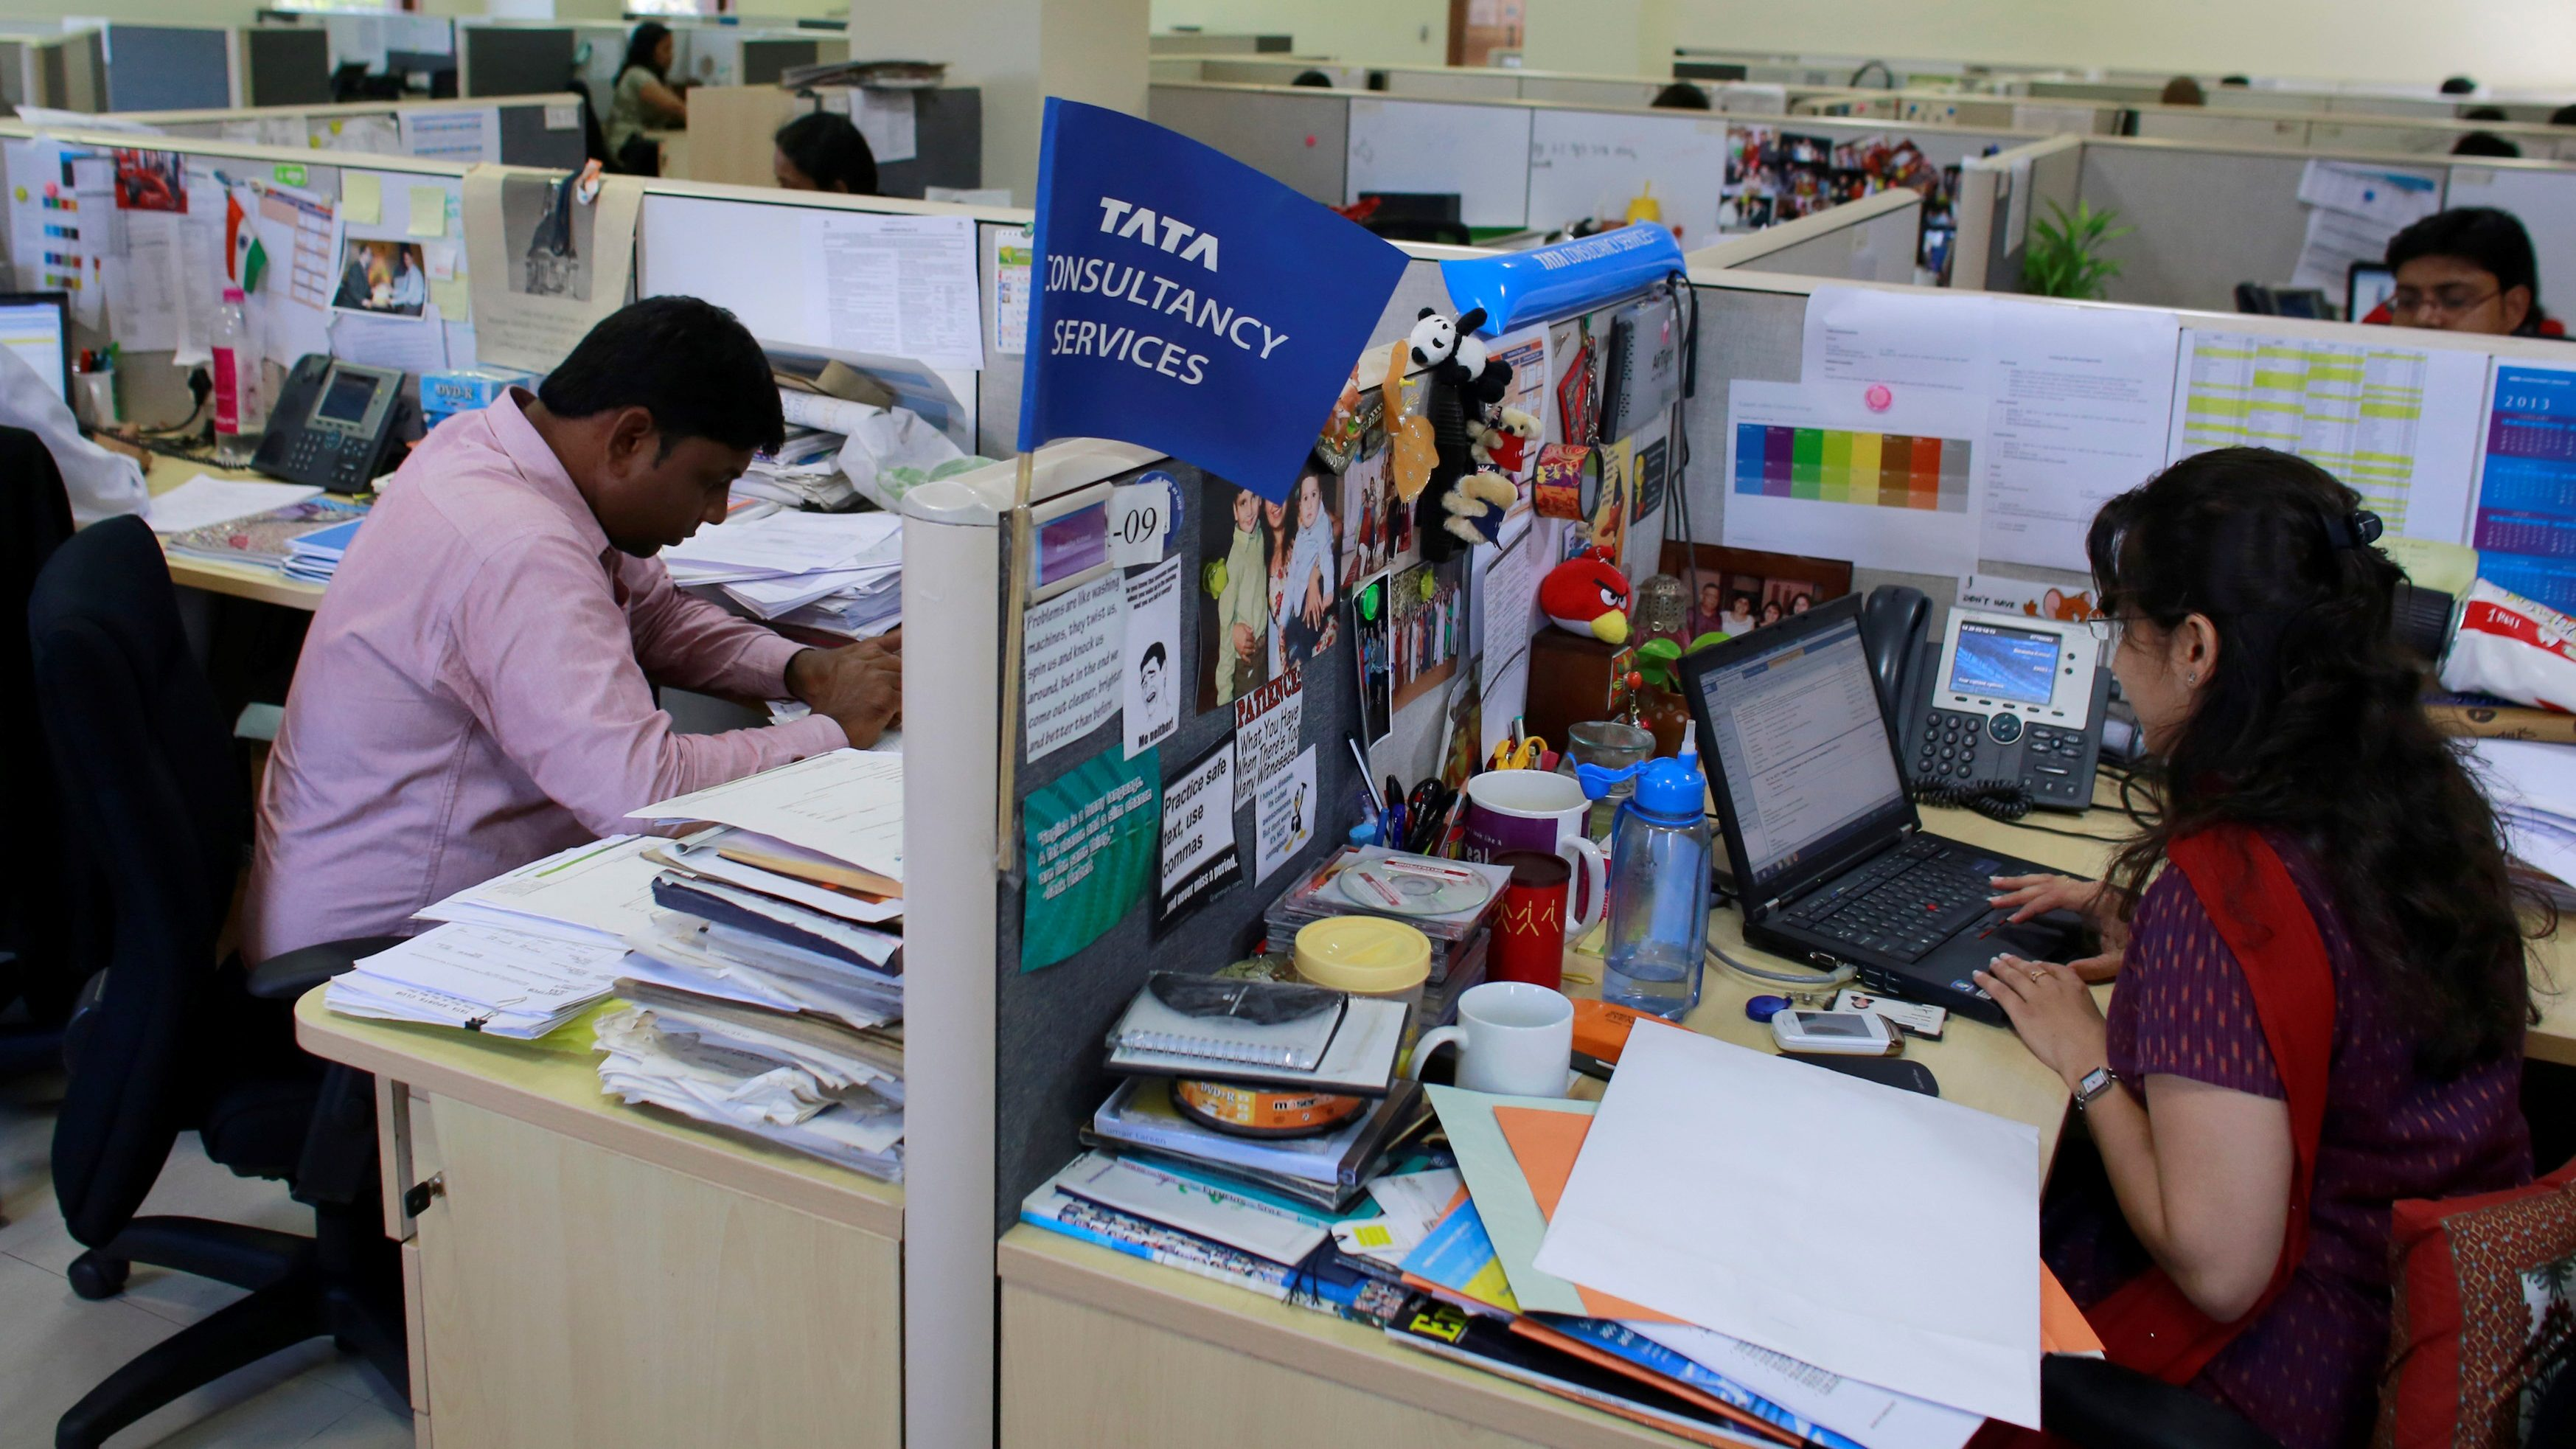 Employees of Tata Consultancy Services (TCS) work inside the company headquarters in Mumbai March 14, 2013.   REUTERS/Danish Siddiqui/File Photo                      GLOBAL BUSINESS WEEK AHEAD PACKAGE    SEARCH BUSINESS WEEK AHEAD 10 OCT FOR ALL IMAGES - RTSRJ1D